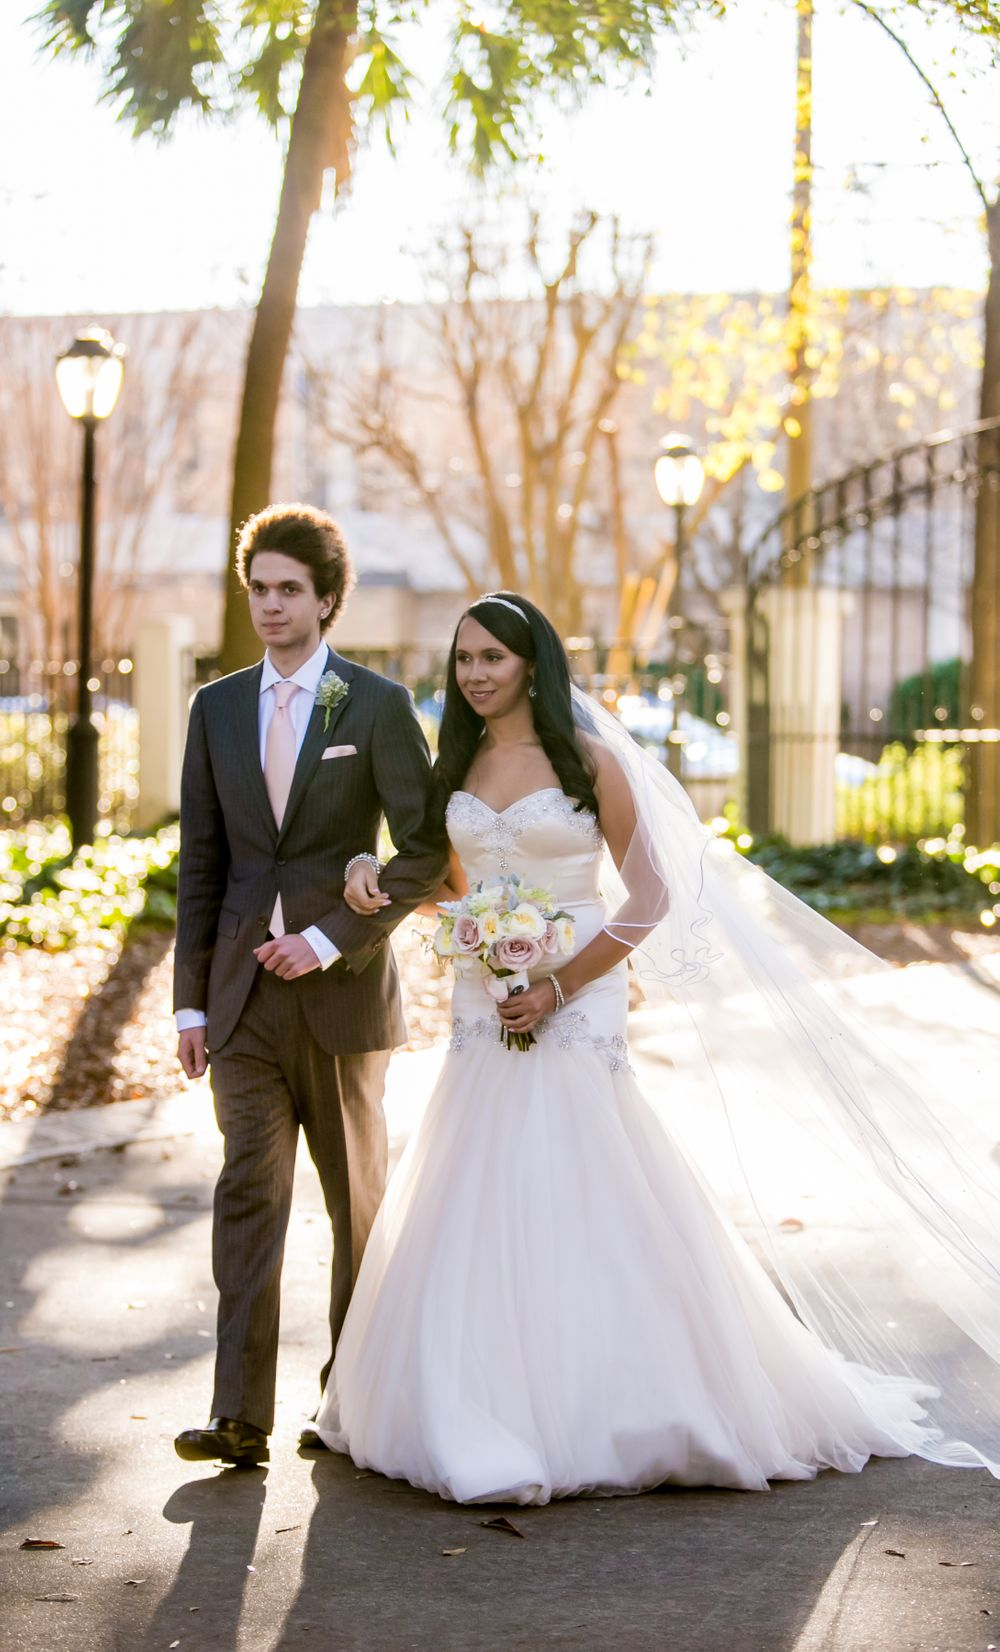 Miranda walks down the aisle with her brother during her wedding at the Lace House in Columbia, SC. Ph